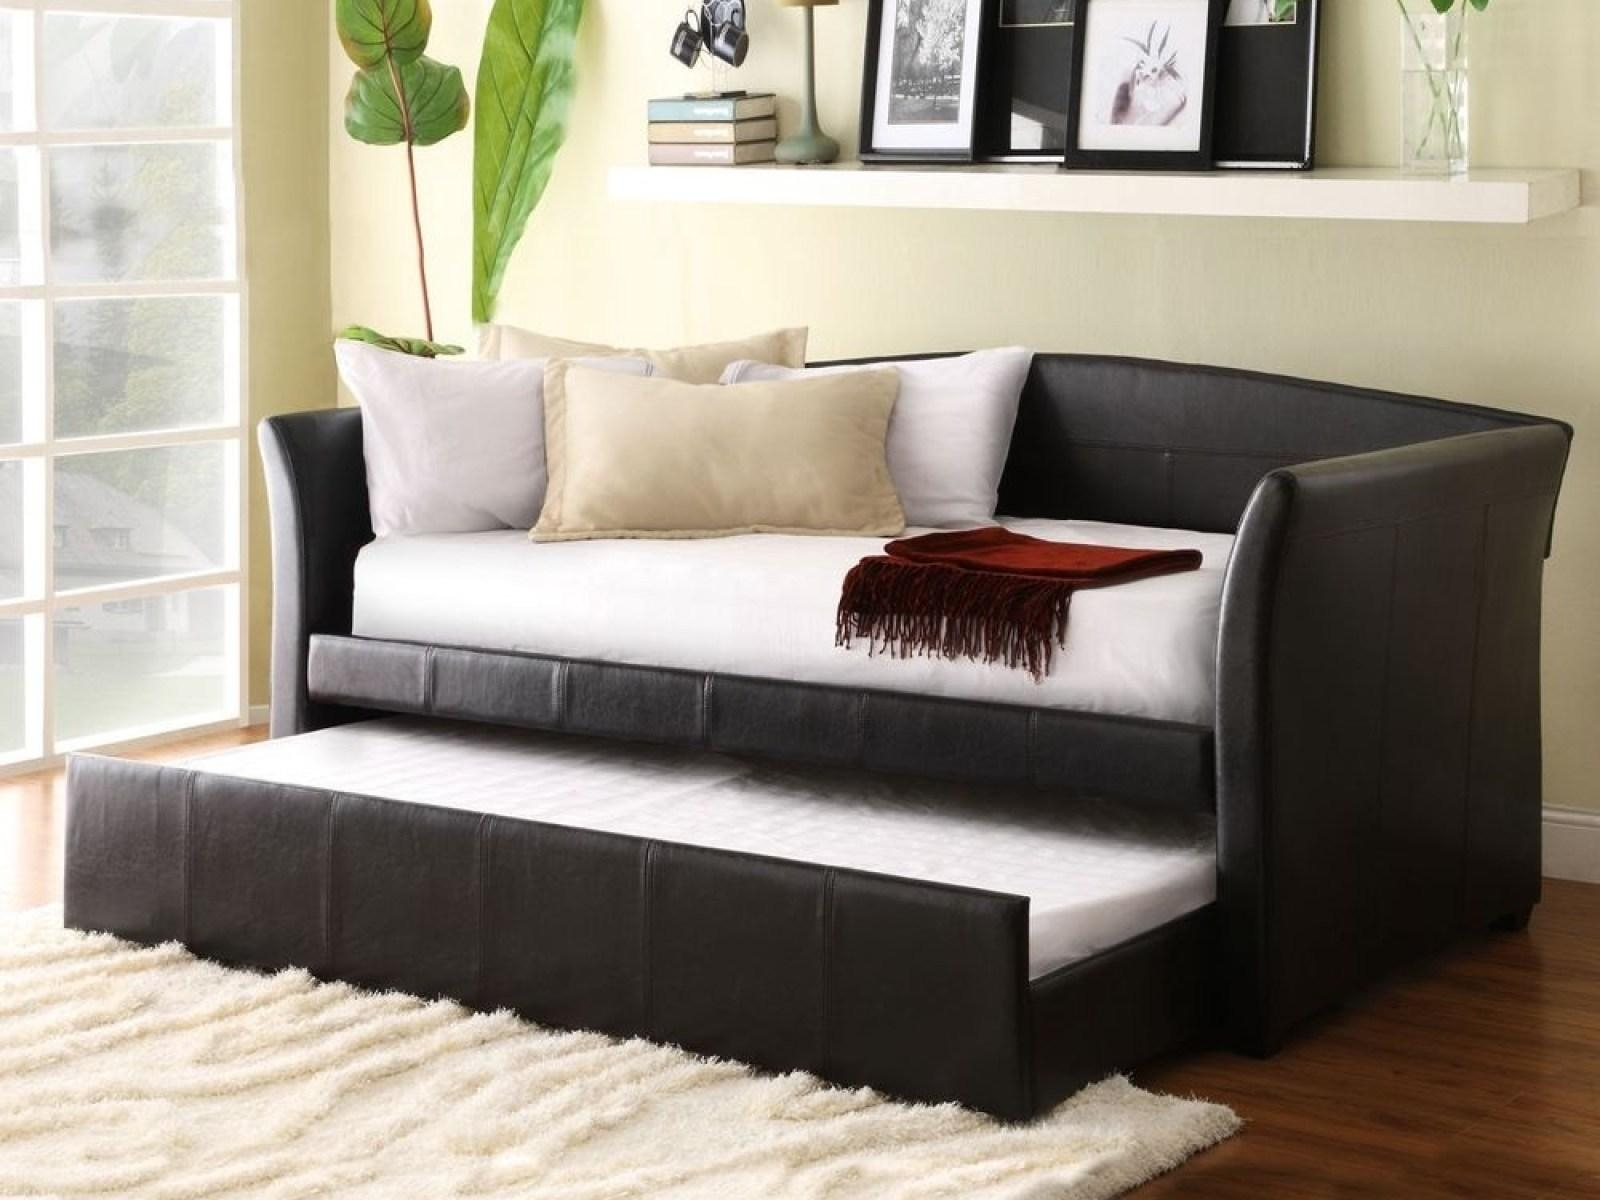 20 Ideas of Awesome Sofa  Sofa Ideas